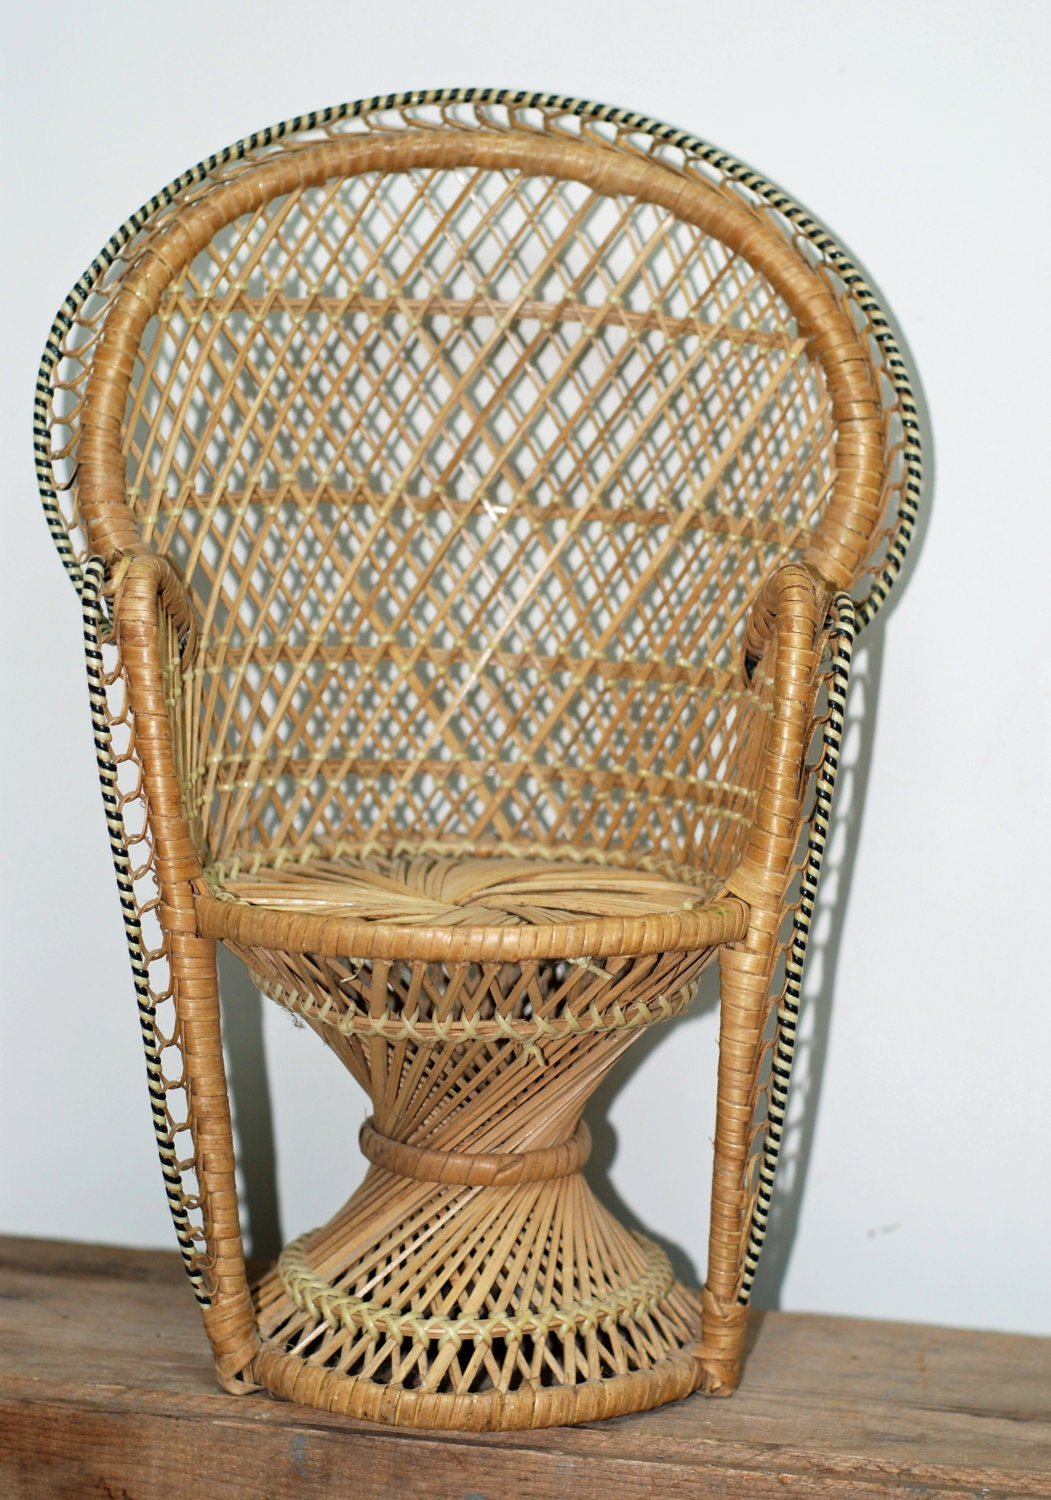 Vintage Buri Wicker 16 Peacock Chair For Doll Or